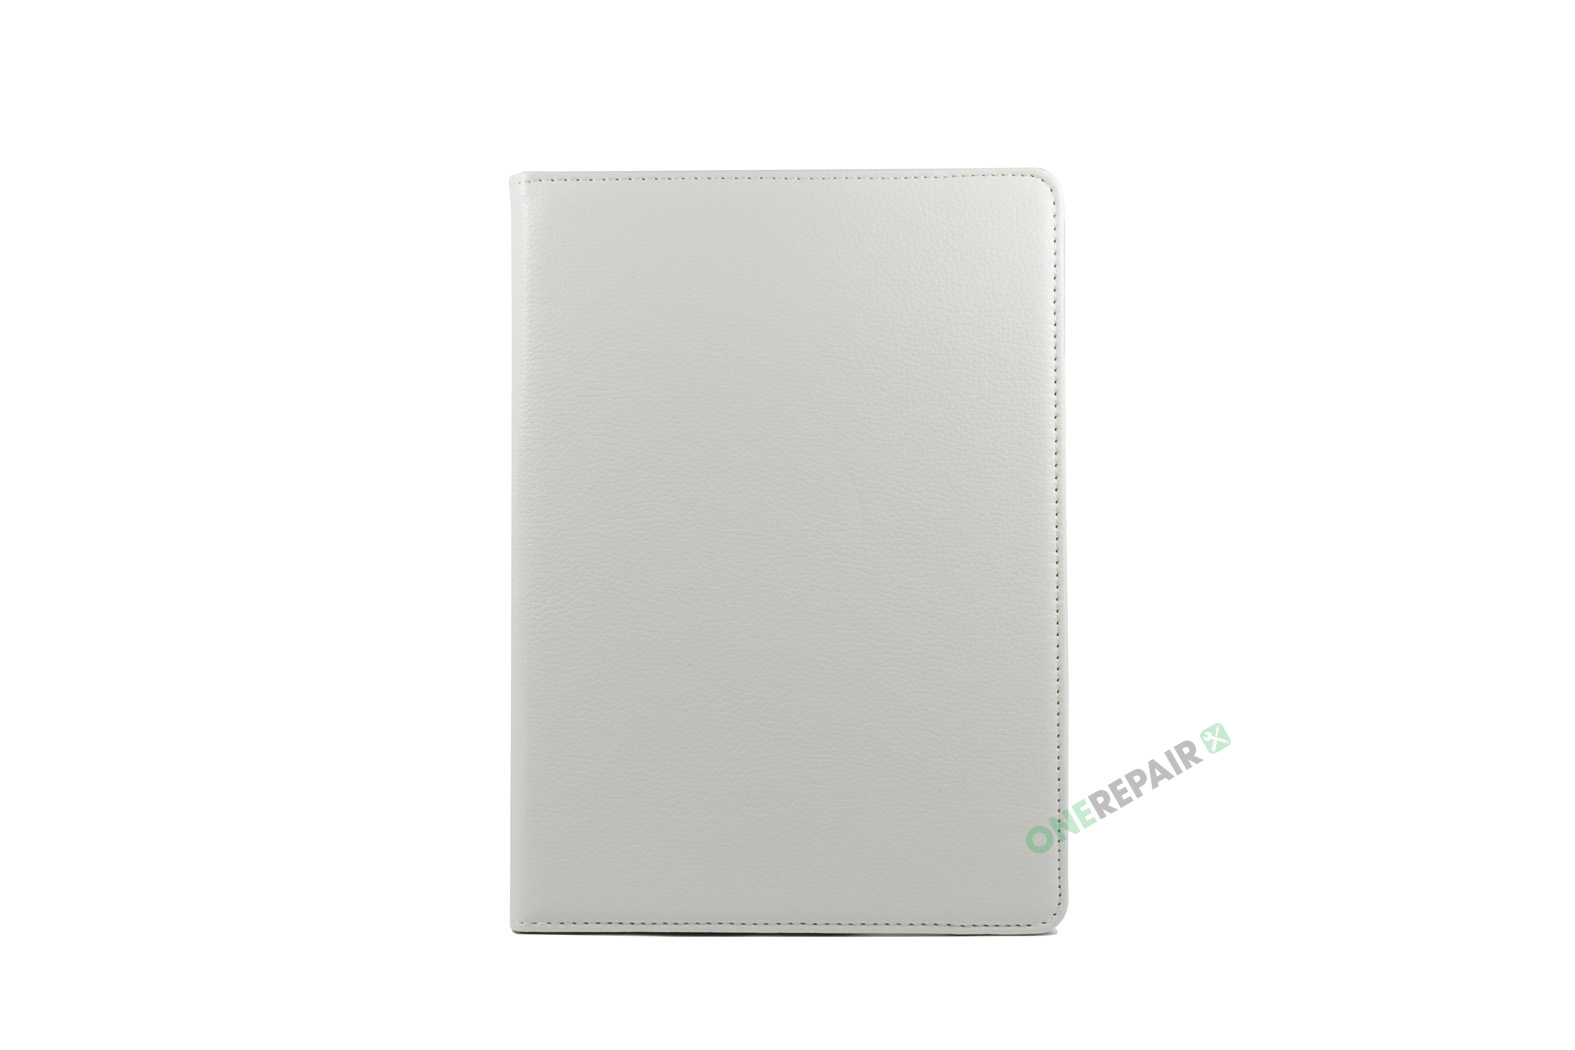 351013_iPad_Air_A1474_A1475_A1476_Flipcover_Cover_Hvid_OneRepair_00002